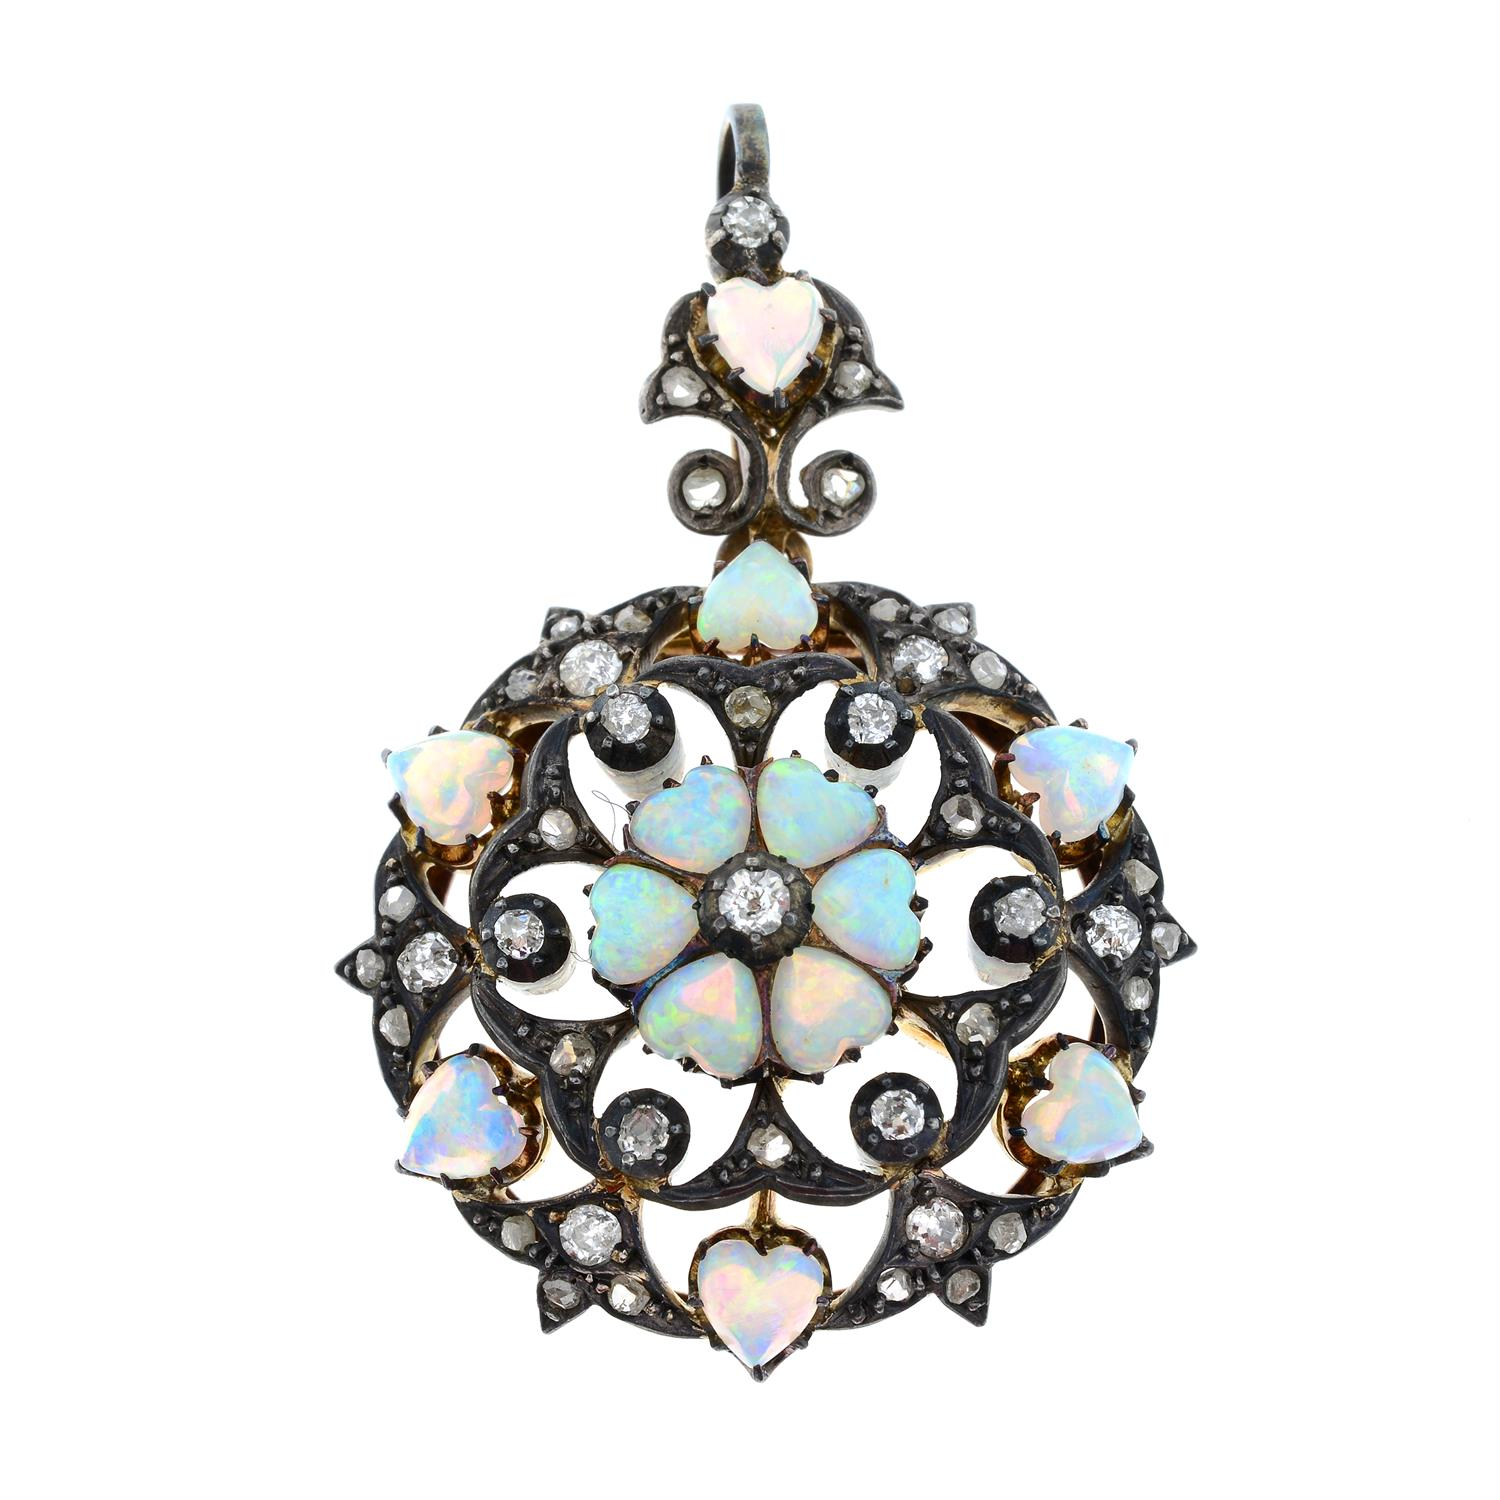 A silver and gold, late 19th century opal heart and diamond pendant/brooch. - Image 2 of 5